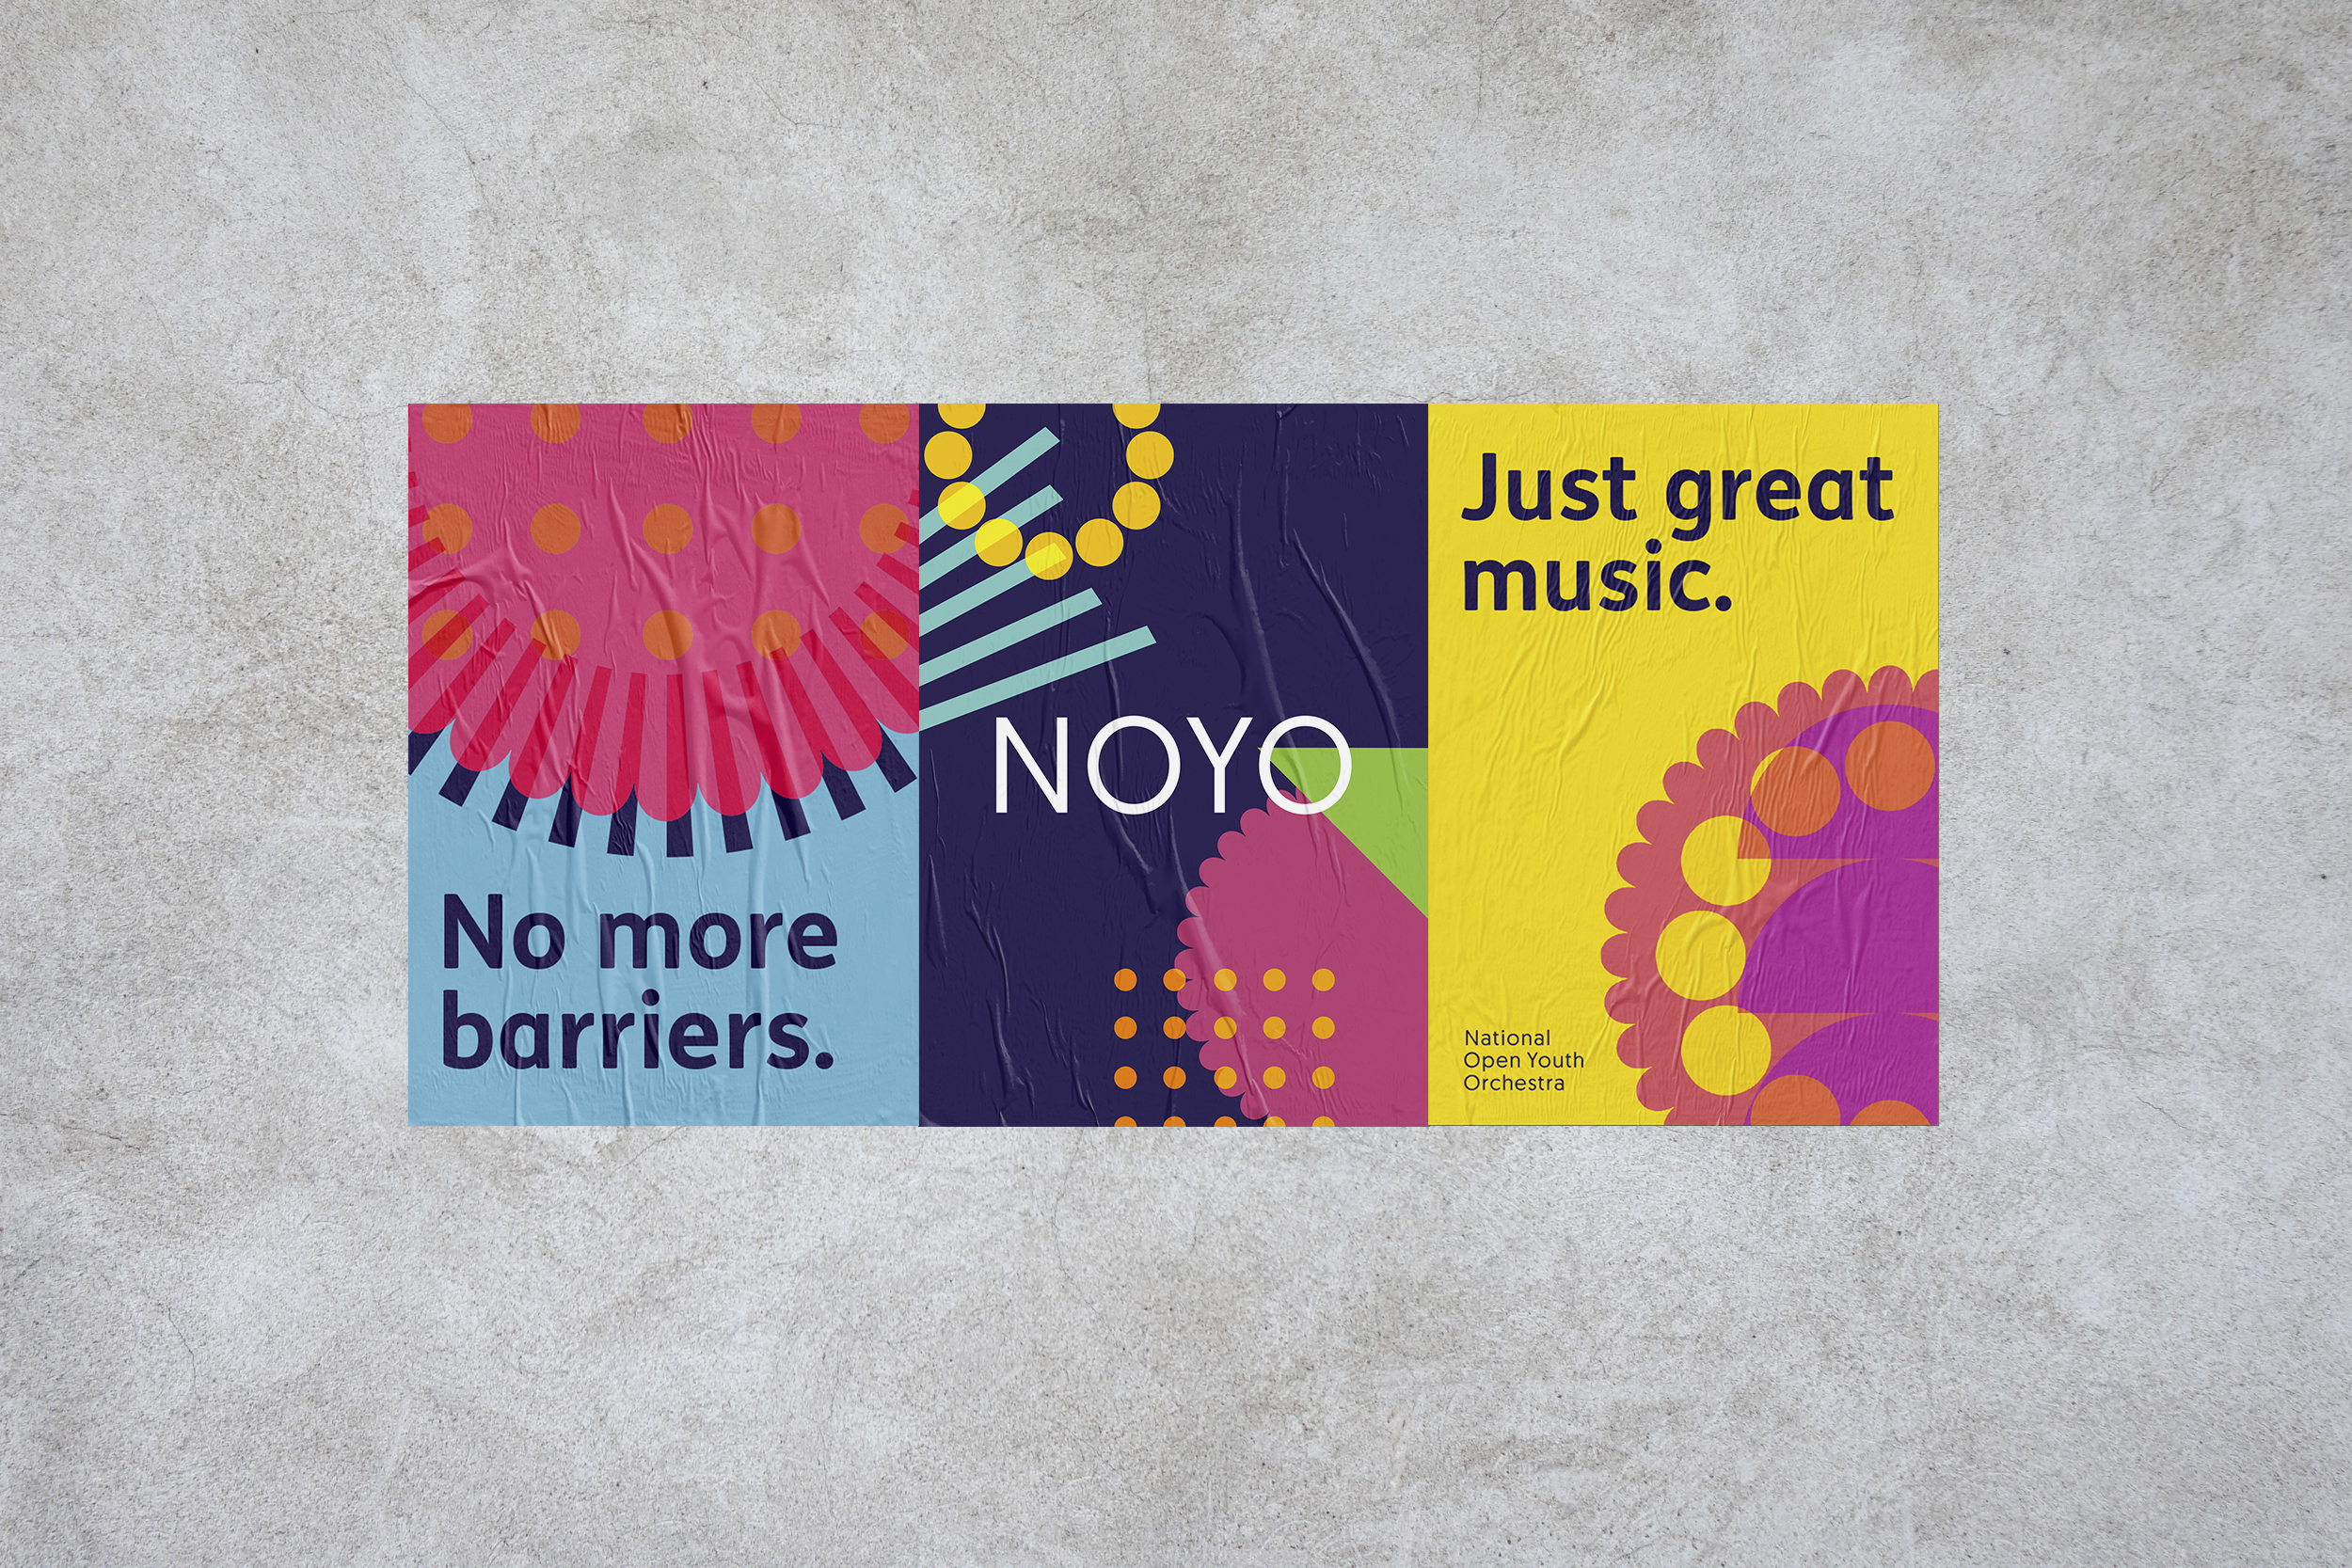 poster design for NOYO charity branding by Fiasco Design